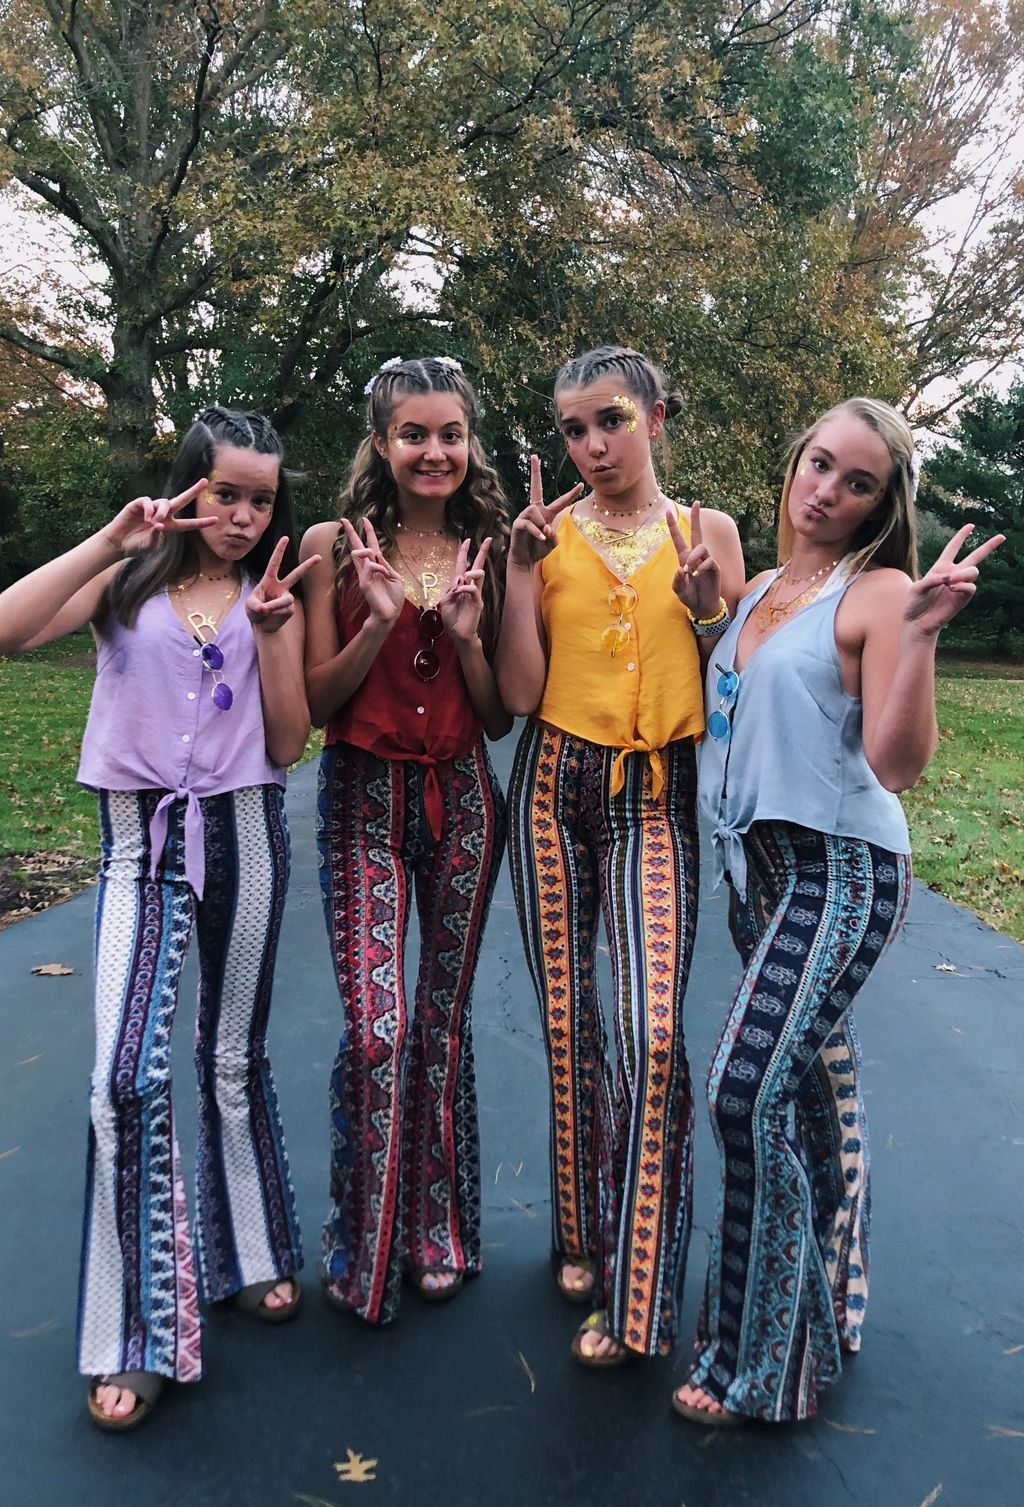 20+ Latest Group Halloween Costumes For Your Girls Squad